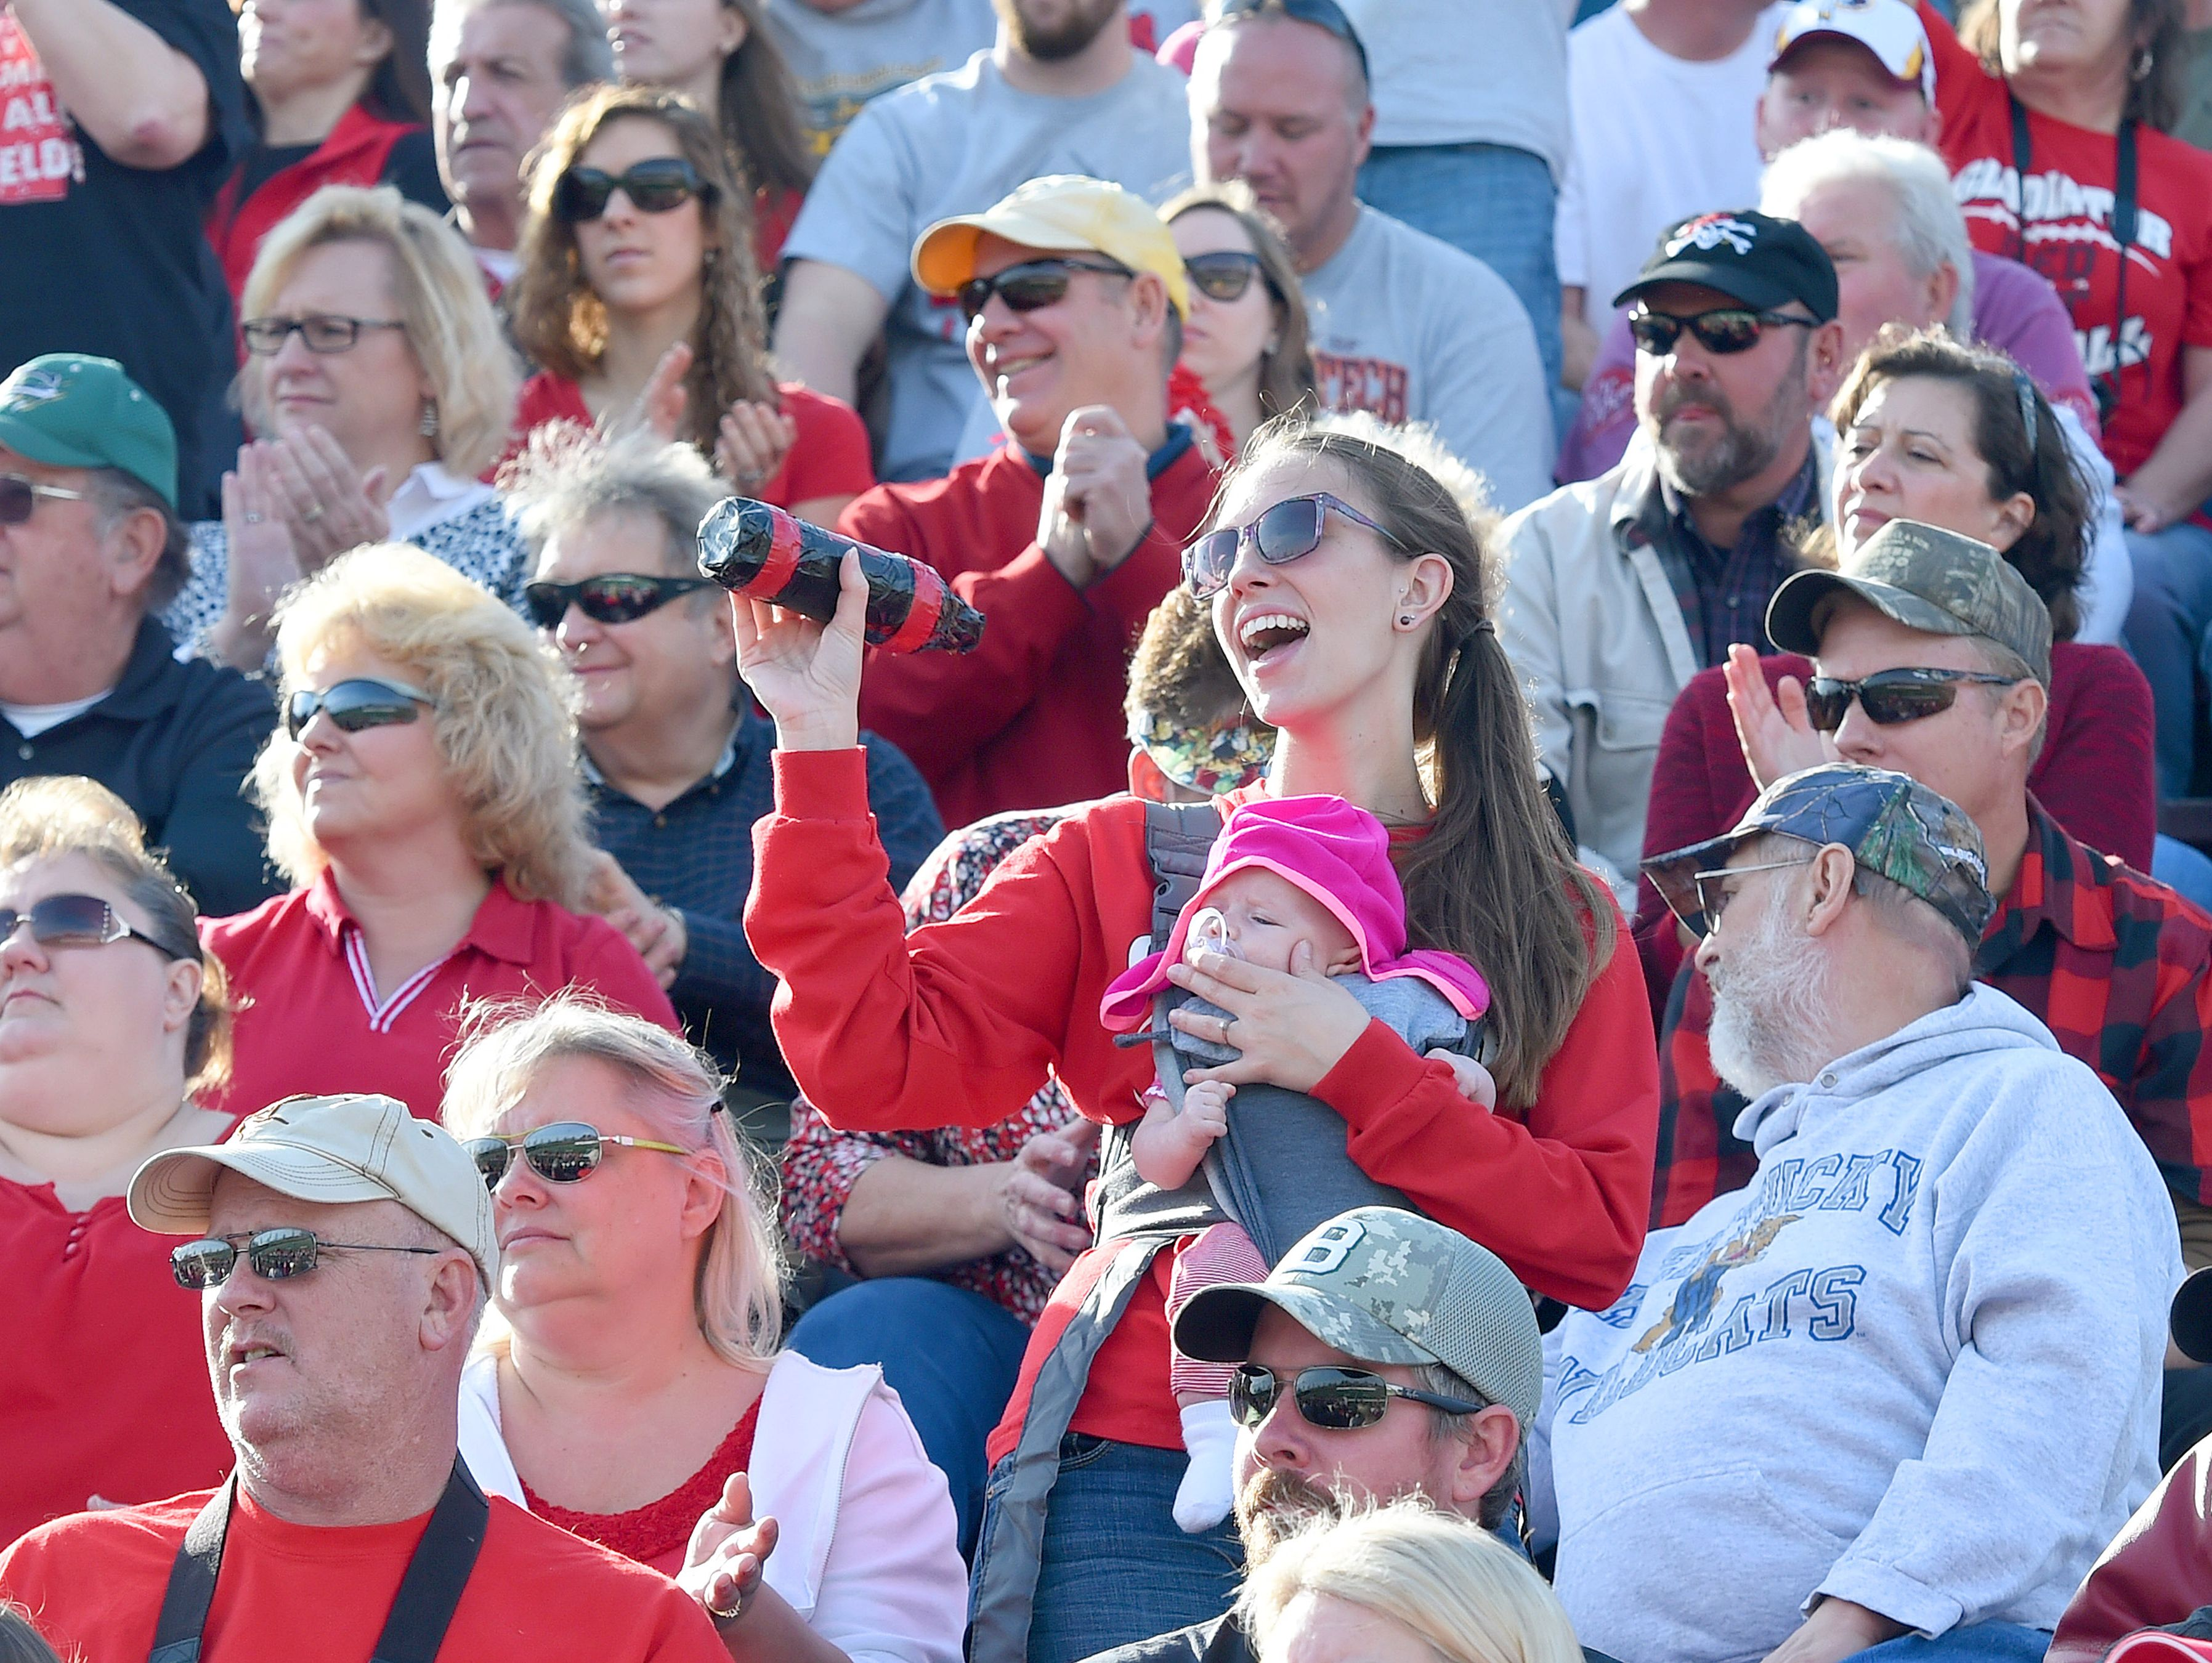 A Riverheads' fan has a baby strapped to her front as she uses a homemade noise maker during the Group 1A football championship in Salem on Saturday, Dec. 12, 2015. Riverheads lost to Galax 7-6.